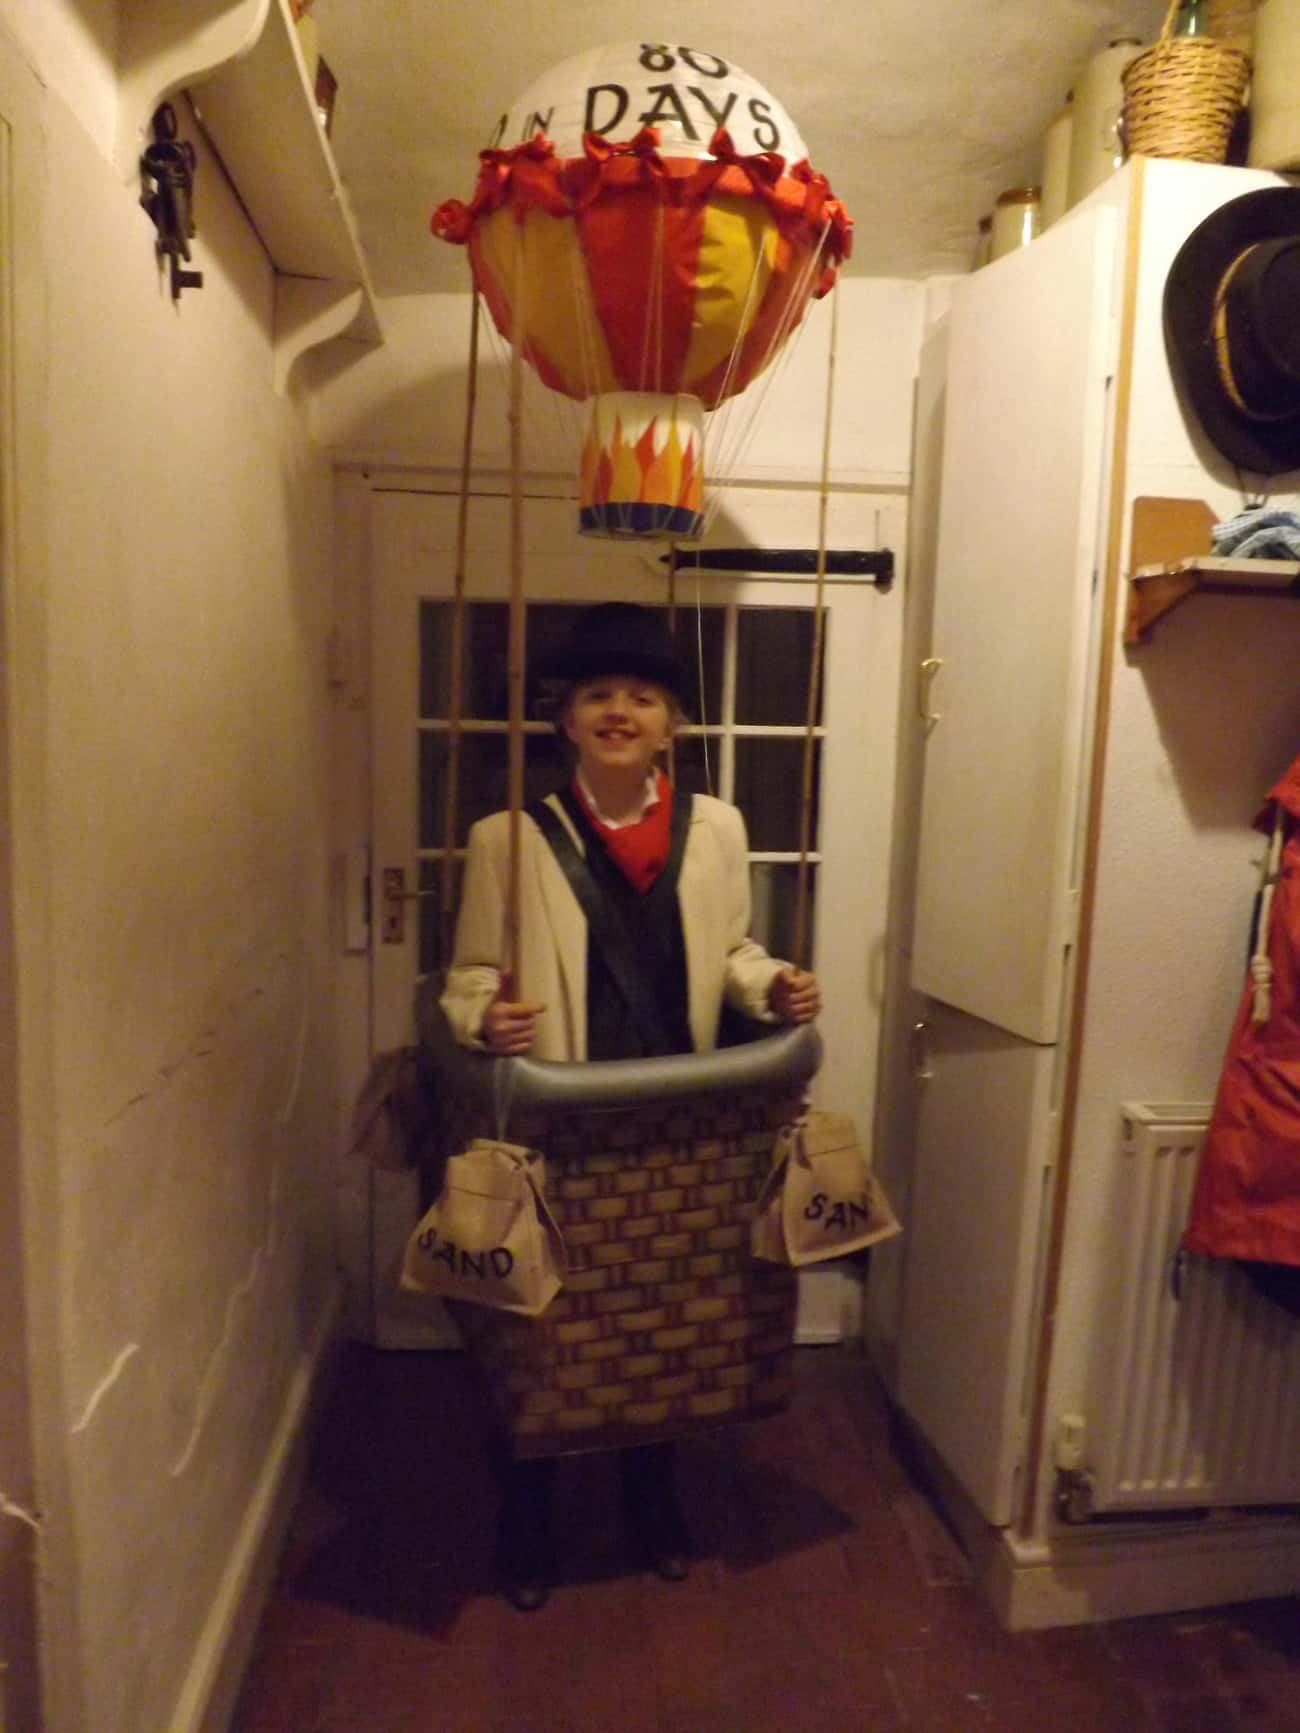 Phileas Fogg is listed (or ranked) 4 on the list 34 Awesome Literary Costume Ideas for Halloween